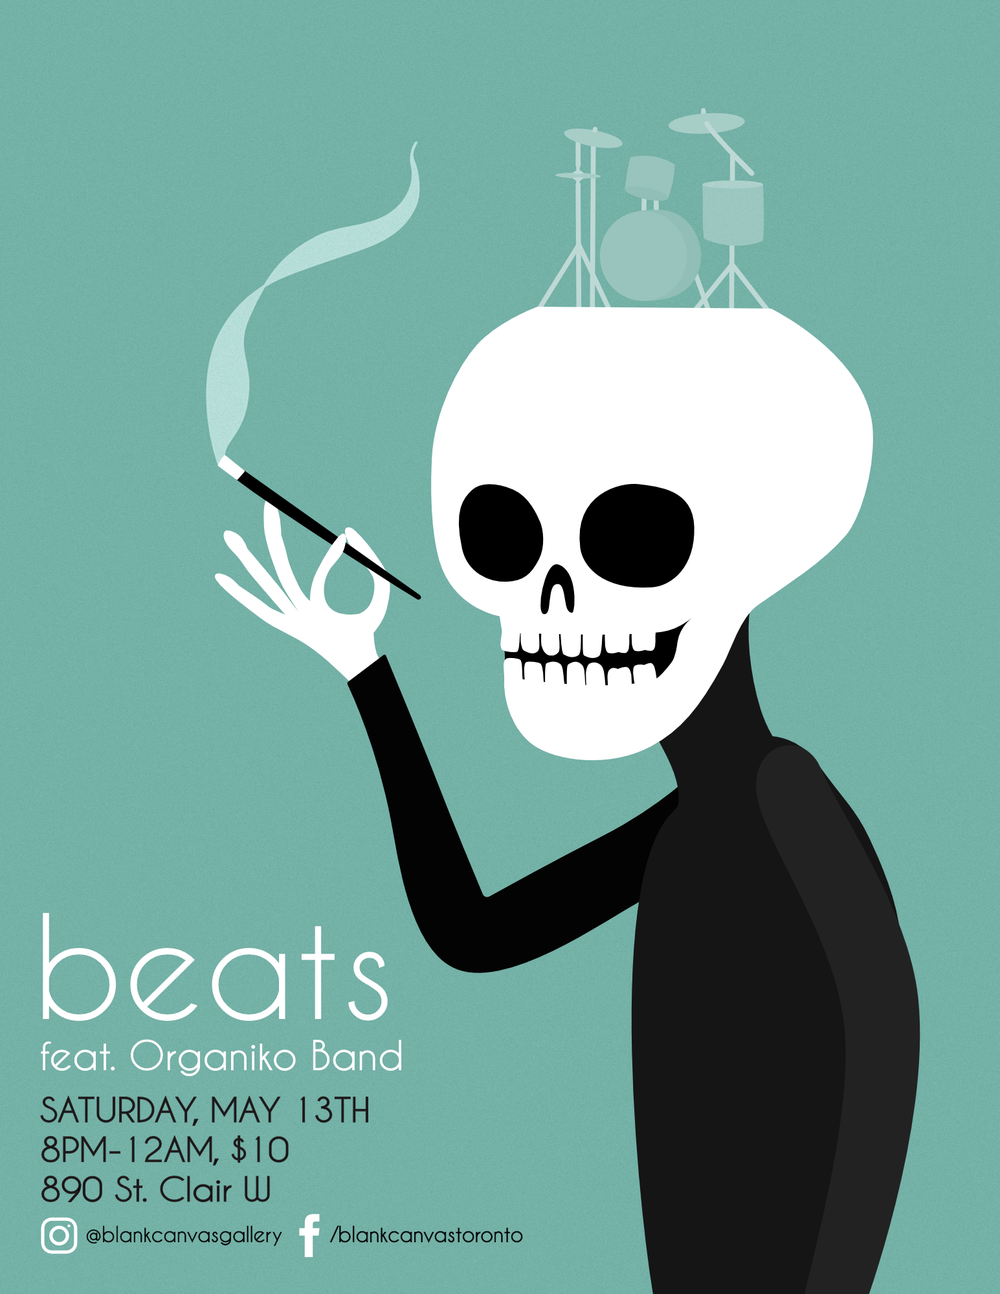 Beats  is an older Blank Canvas Event that features local bands who provide a contemporary fusion of various sounds. The beatnick vibe that is present in the Dead Poet events was inspiration for the flyer.